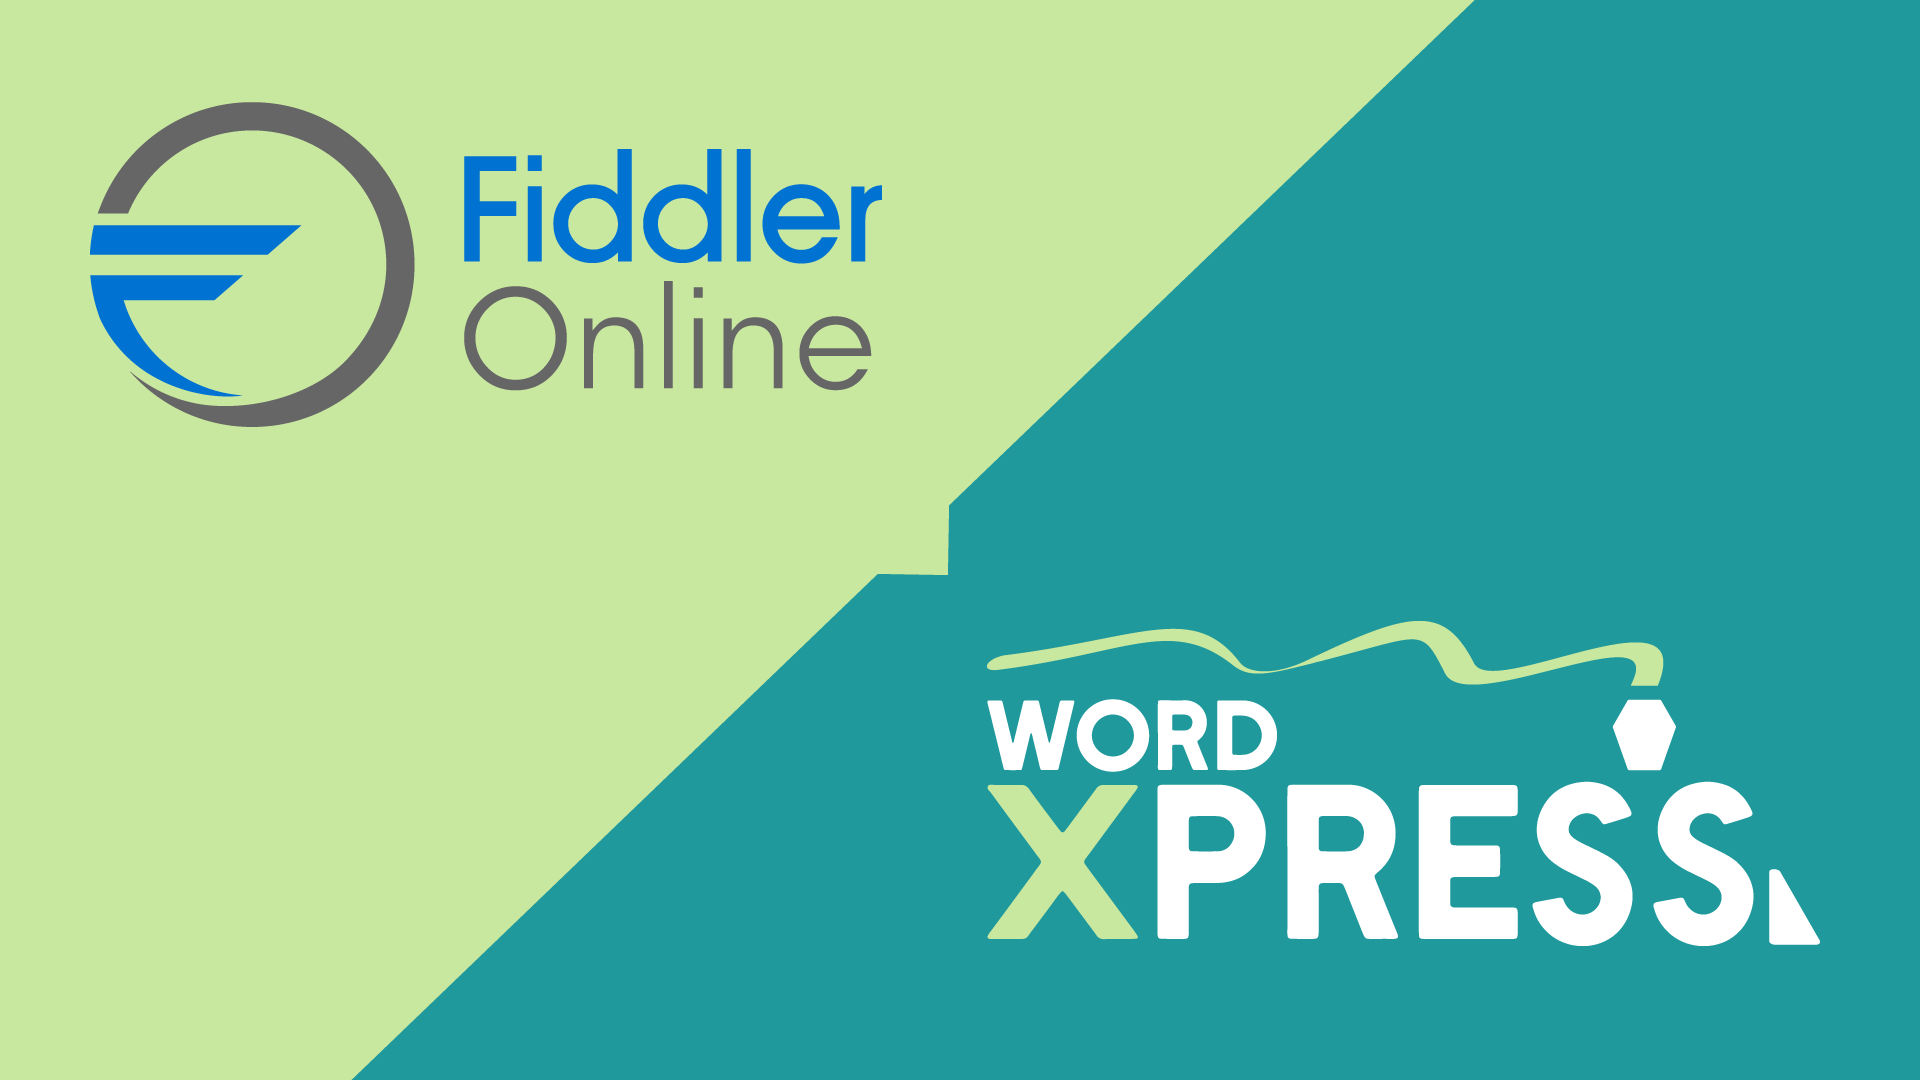 Fiddler online rebranded wordxpress